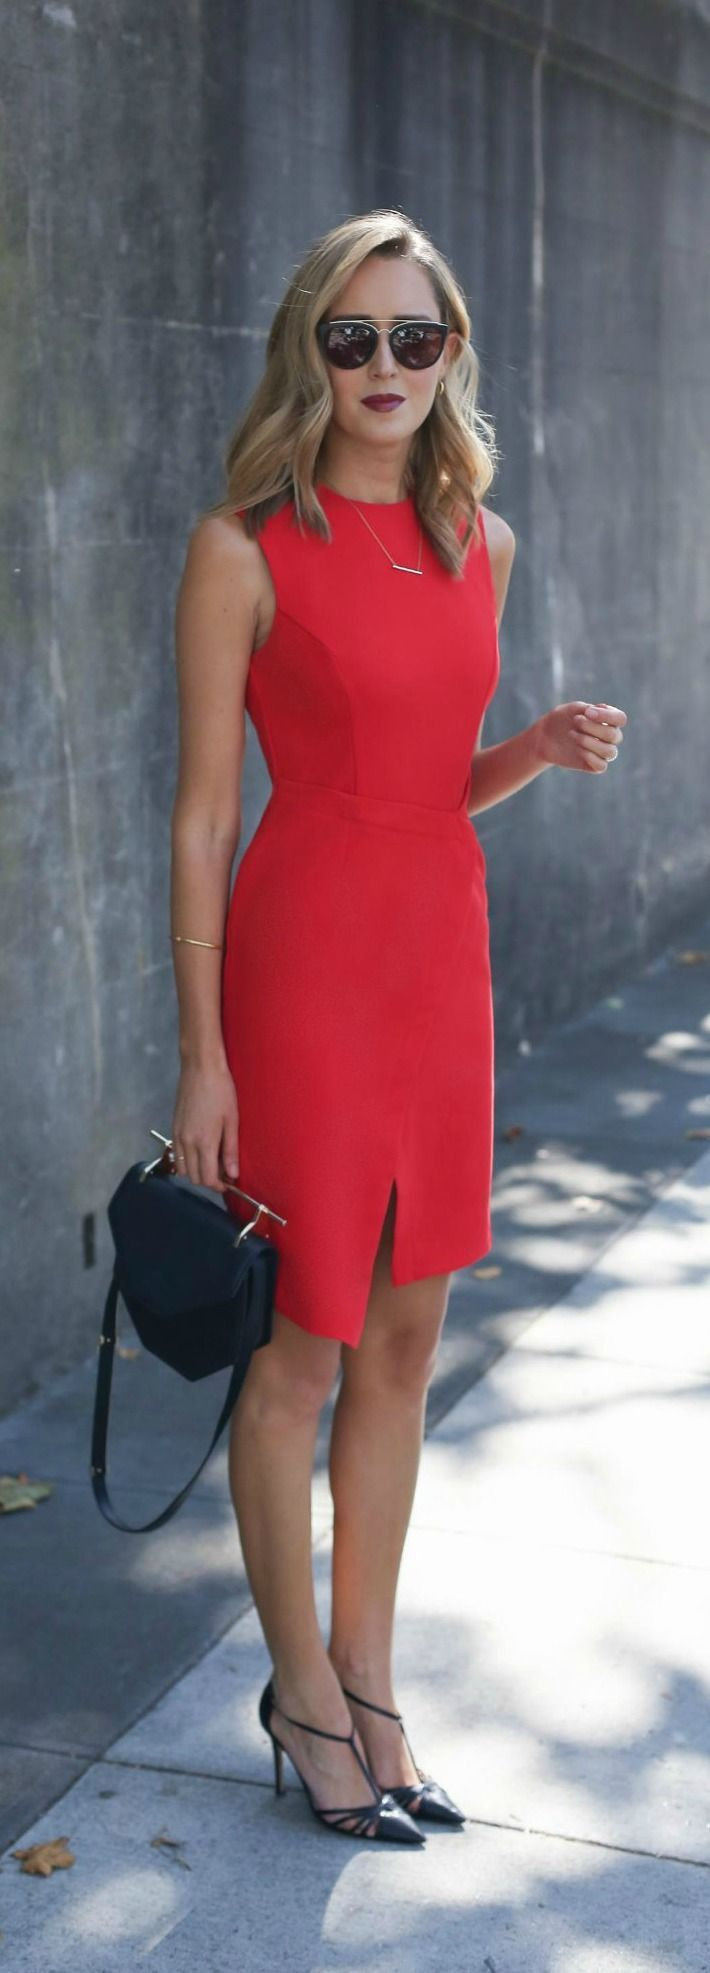 red wrap front midi dress, black pointed toe heels, black shoulder bag, black square sunglasses + curled hairstyle {topshop, sjp collection, m2malletier, smoke x mirrors} {thetroveapp}